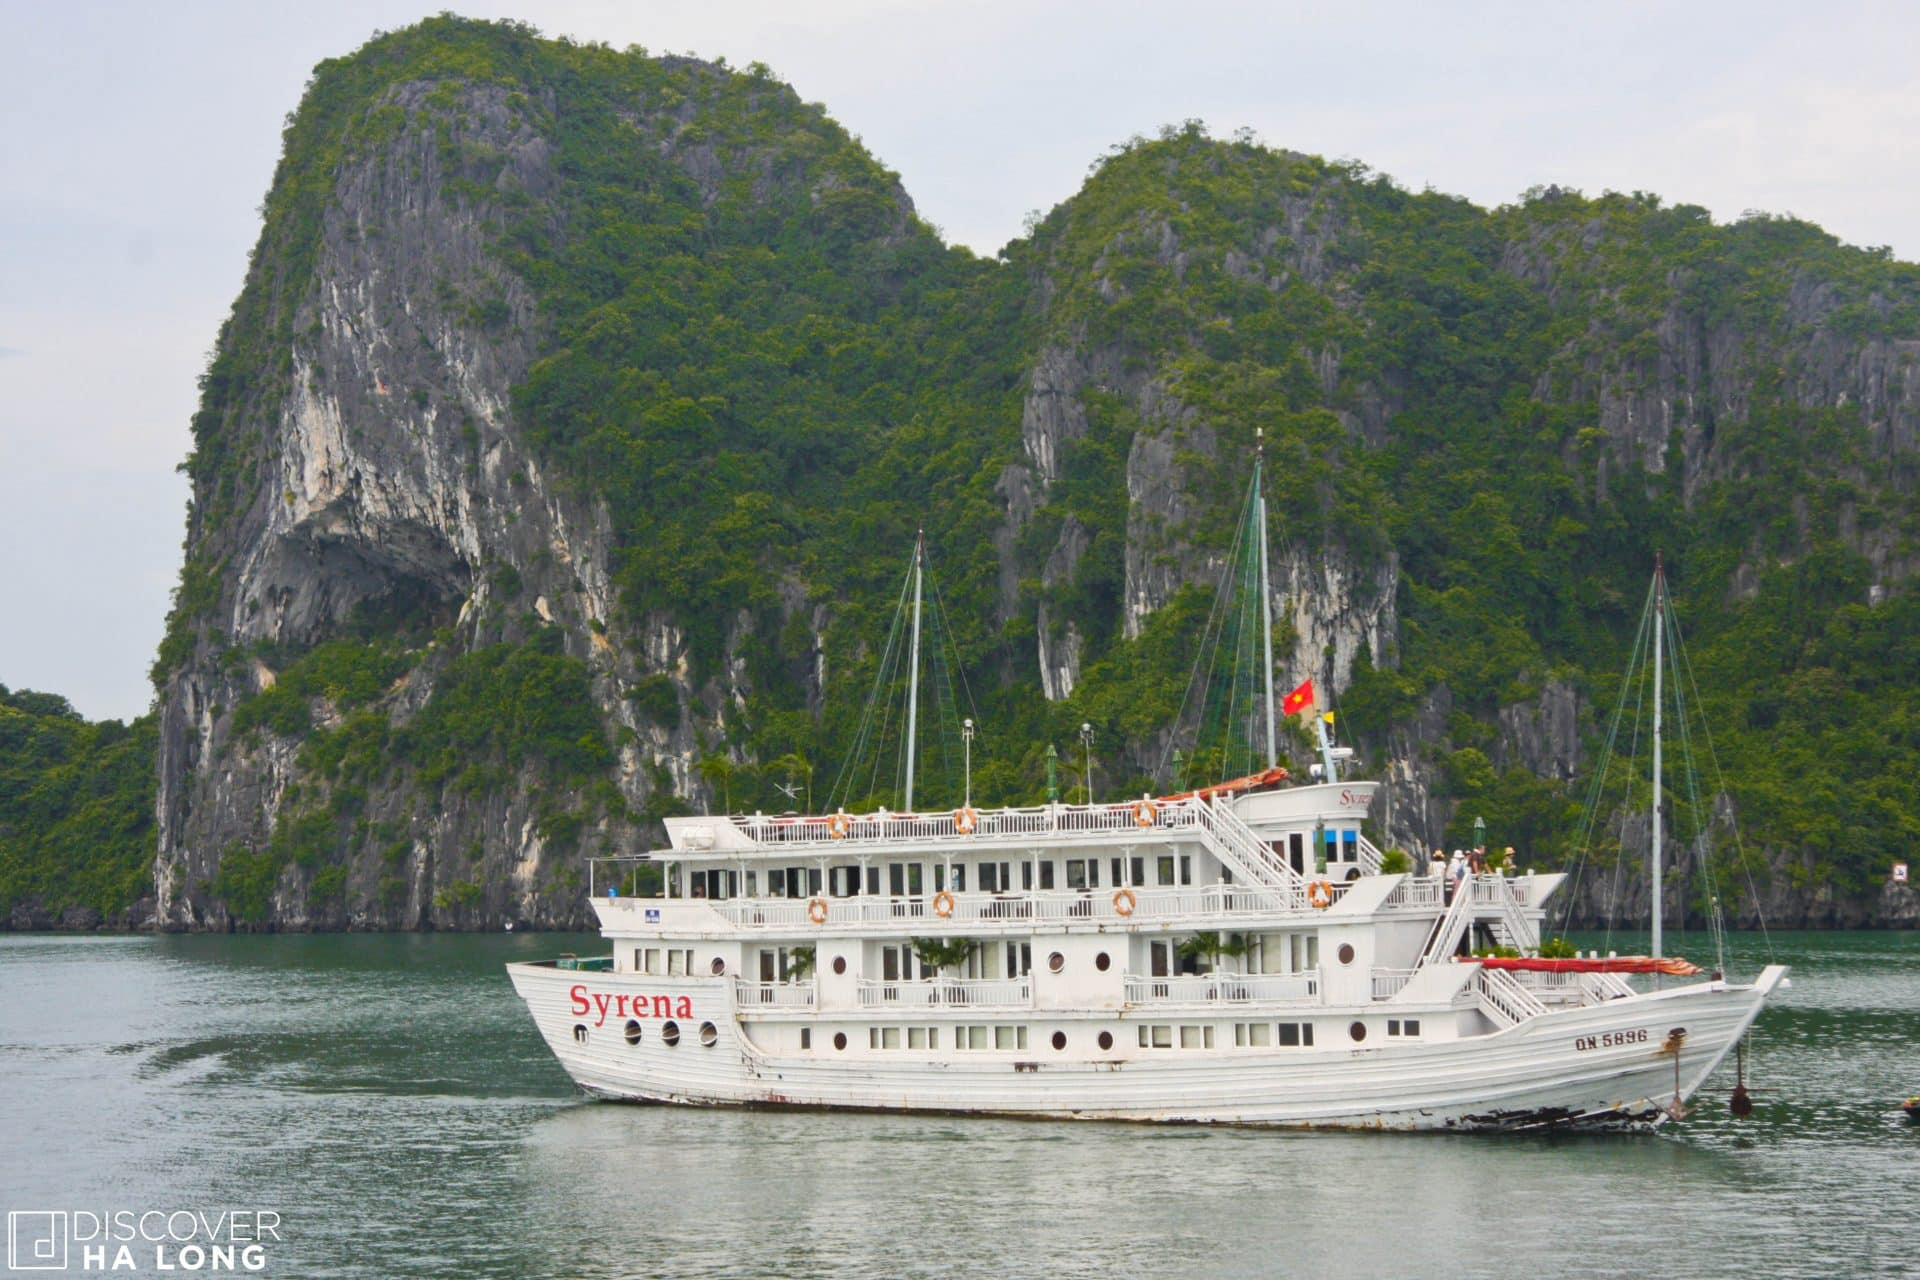 halong-inspection-xxlinh-064